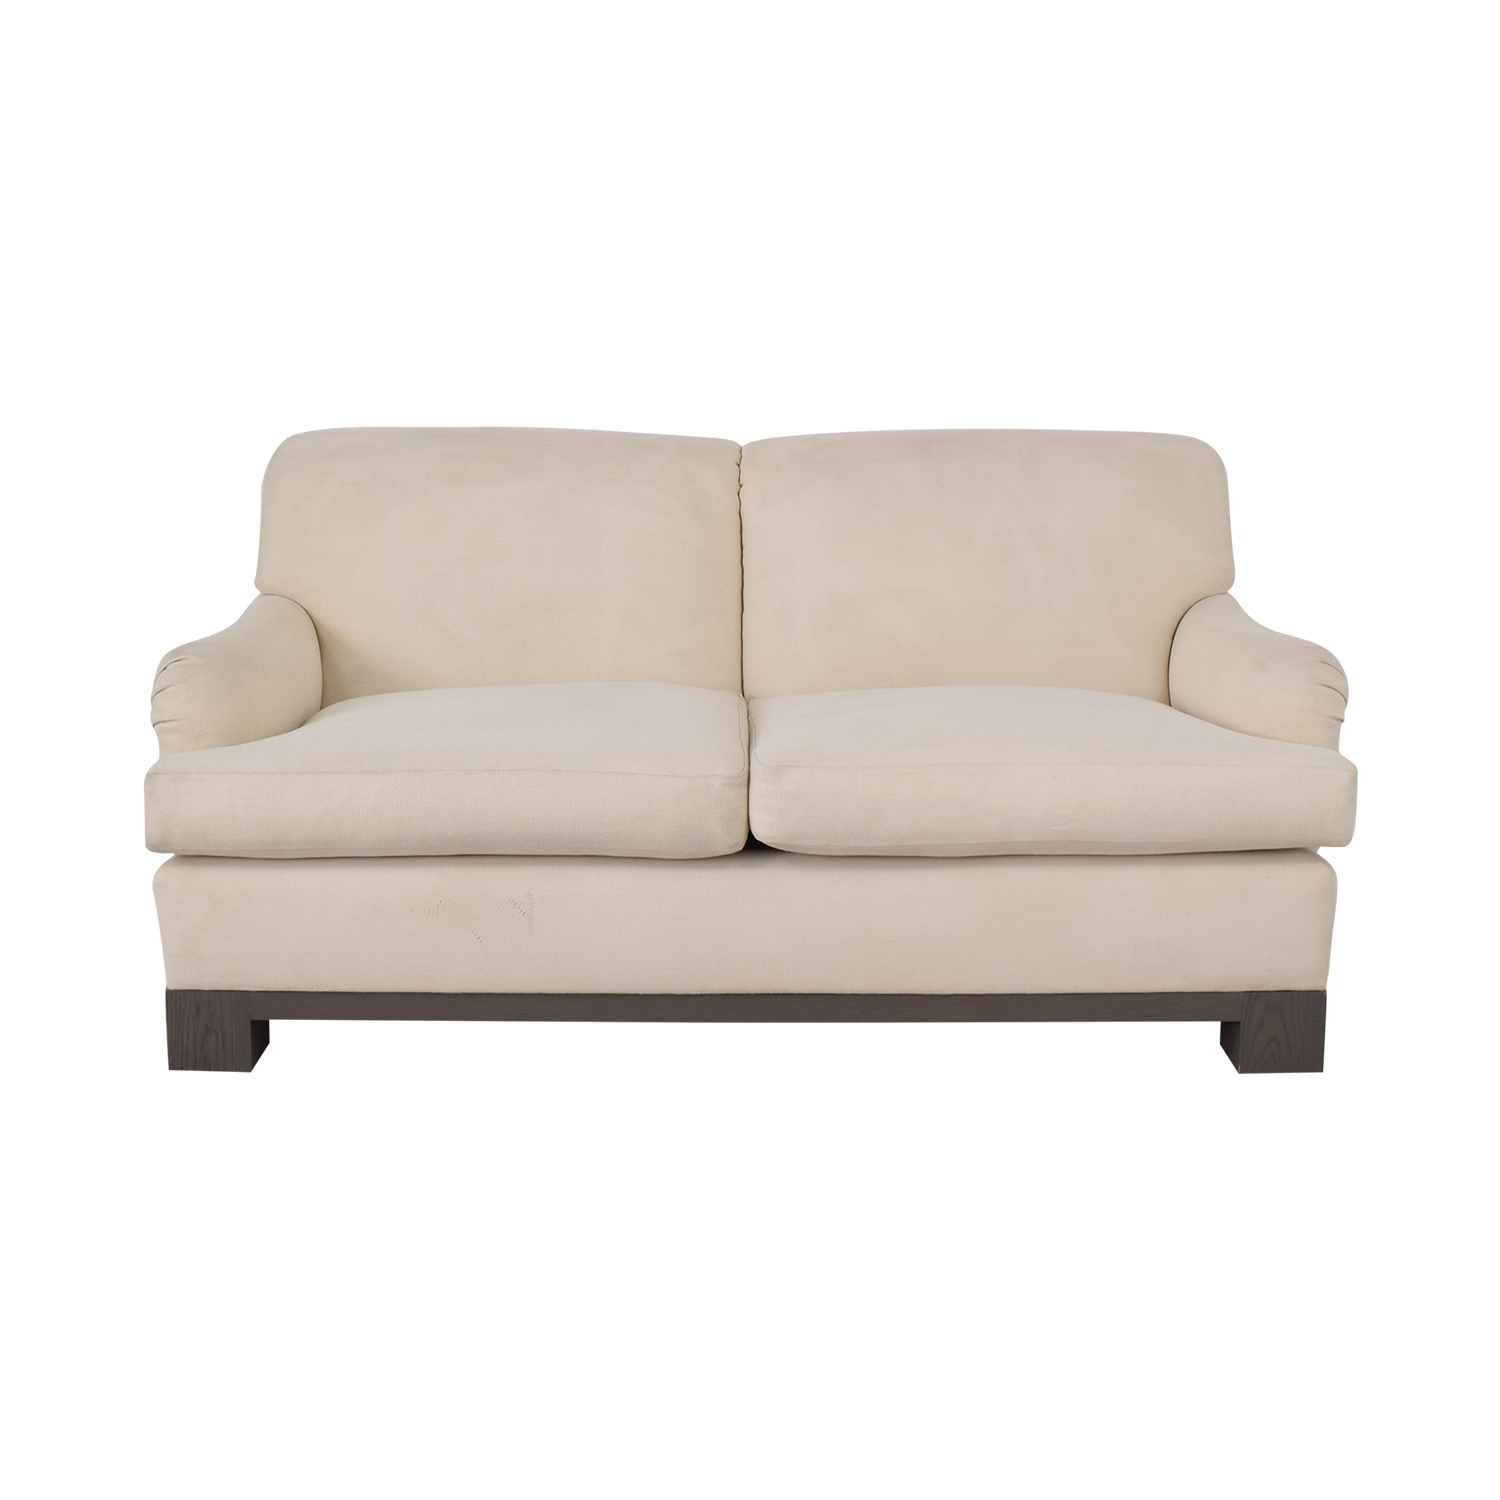 Furniture Masters Furniture Masters White Sofa